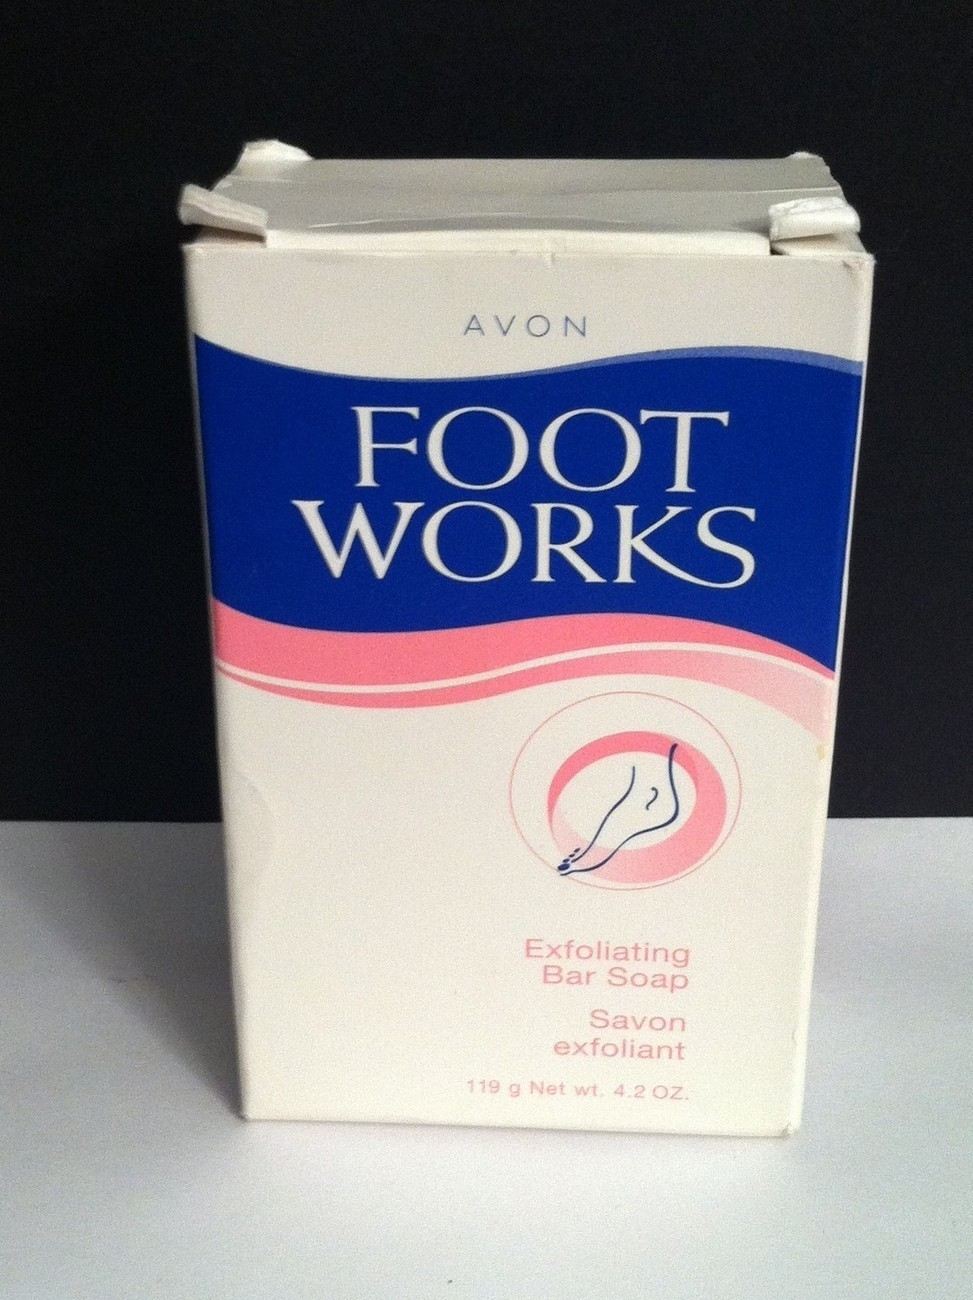 Avon footworks exfoliating foot bar soap